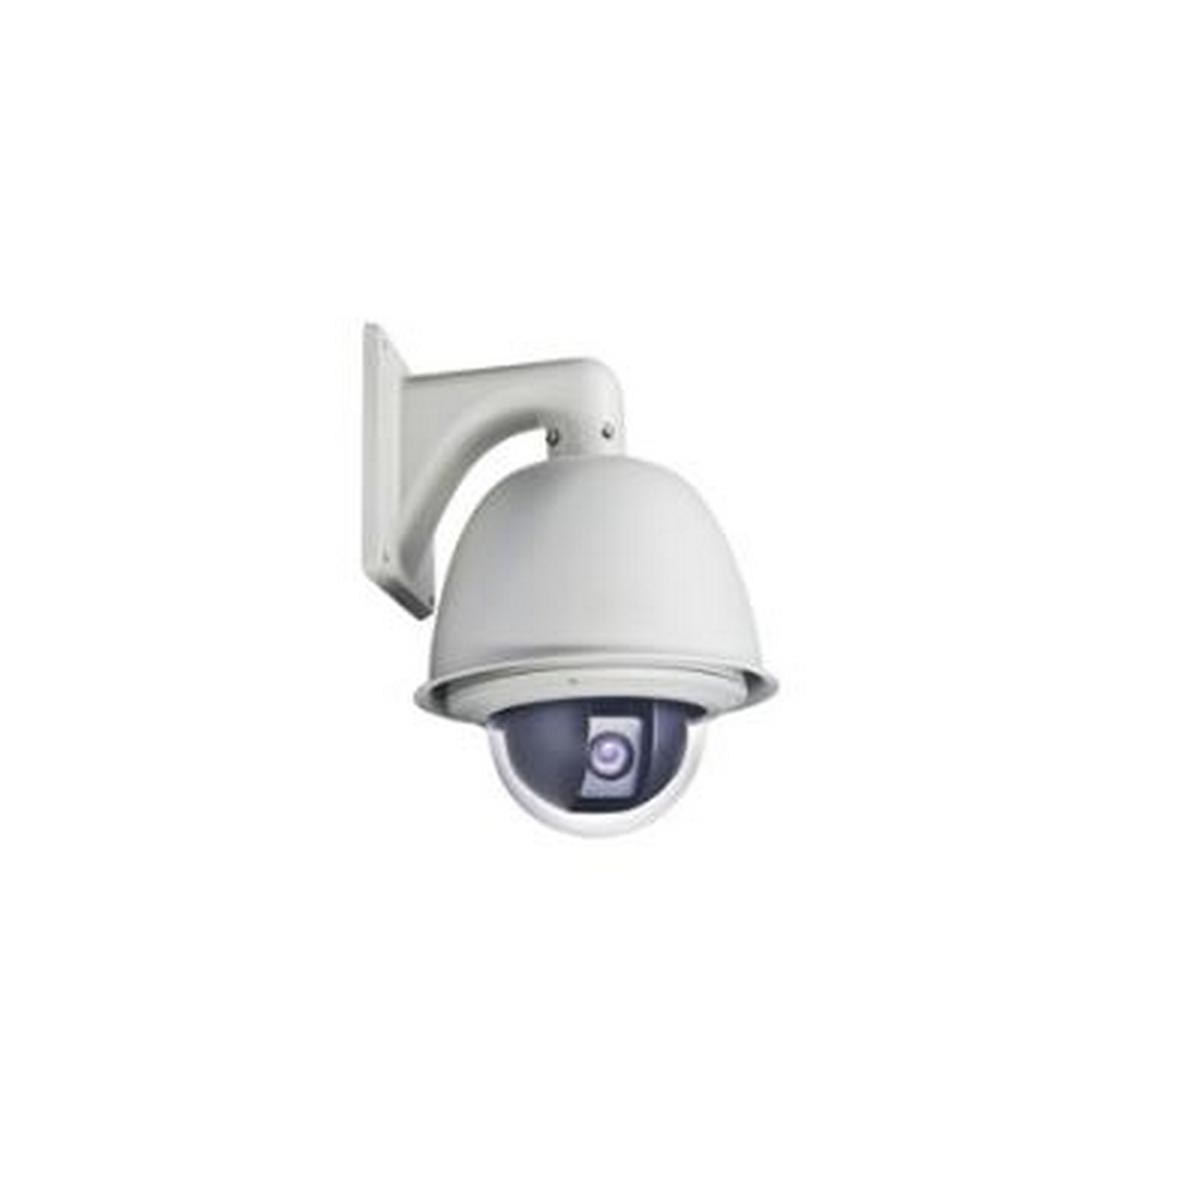 INDOOR/OUTDOOR PTZ, 600TV LINES, 36X OPTICAL AUTO FOCUS ZOOM W/ AUTO TRACKING TECHNOLOGY, 24VAC - POWER SUPPLY AND WALL MOUNT INCLUDED